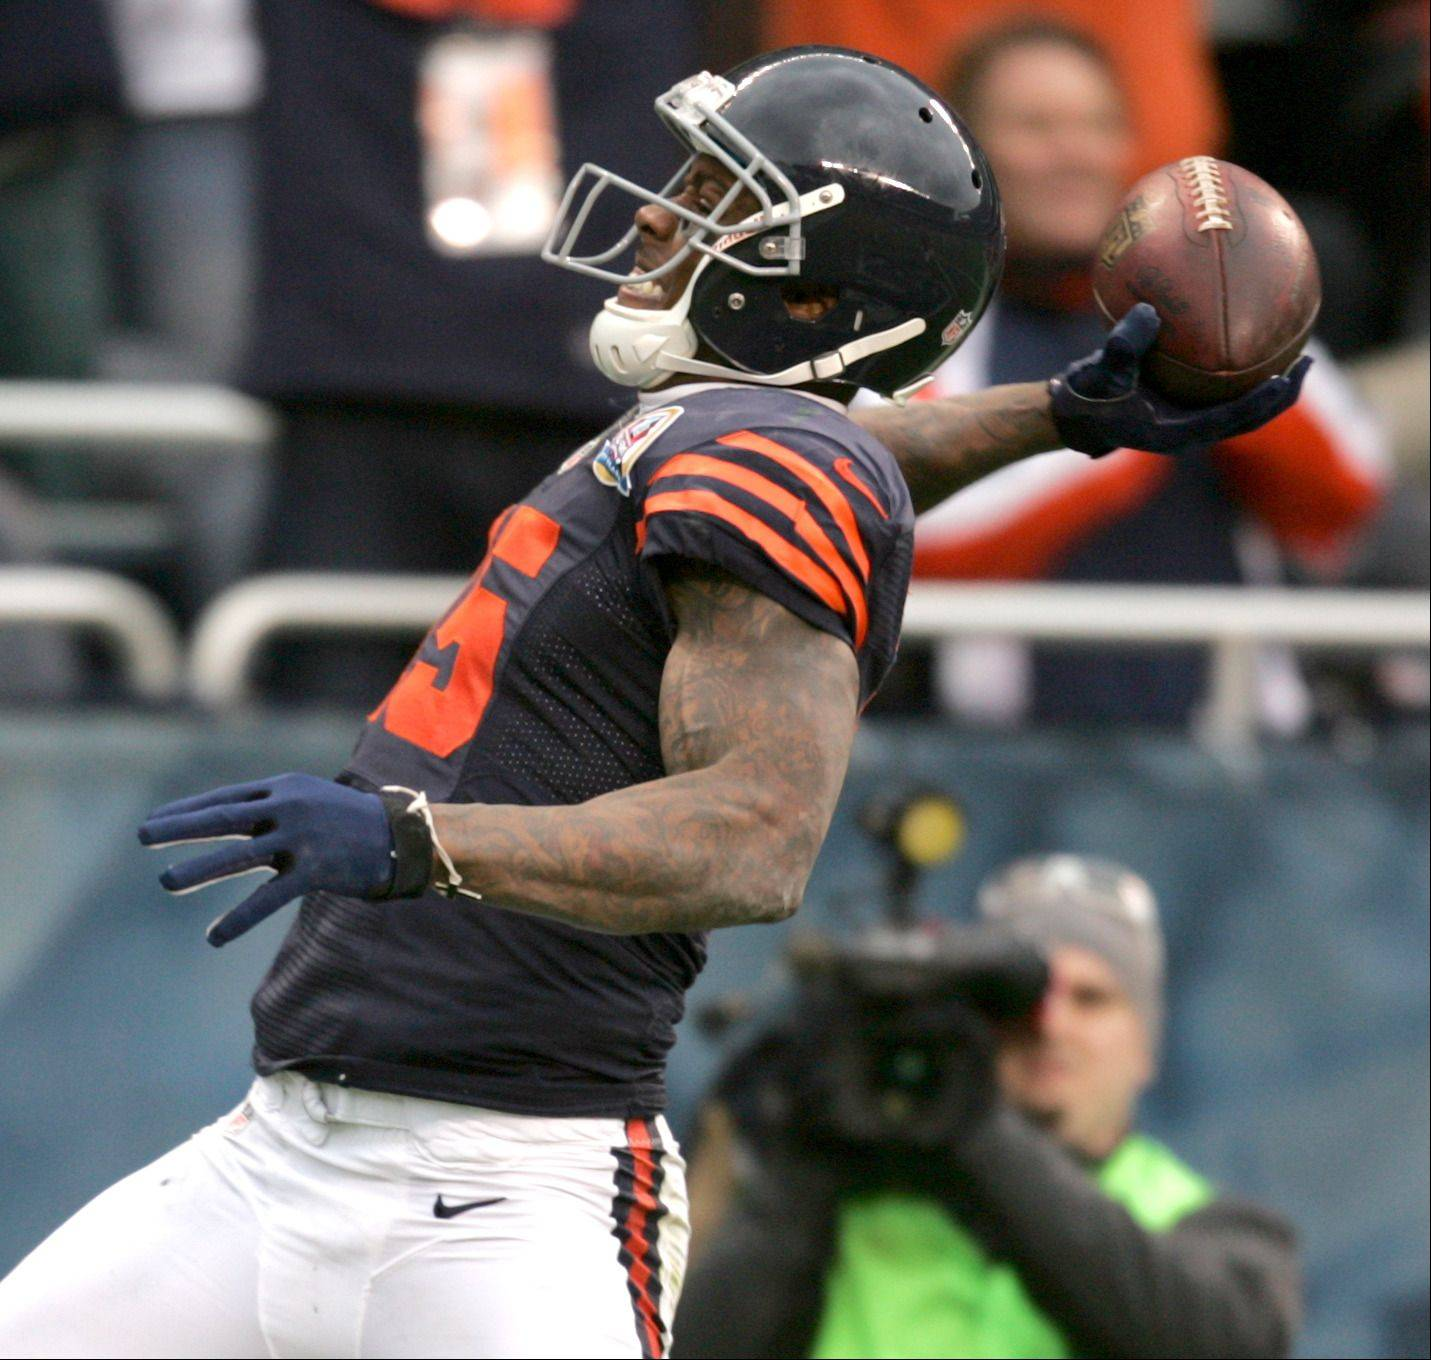 Chicago Bears wide receiver Brandon Marshall (15) reacts following a touchdown during Sunday's game at Soldier Field in Chicago.